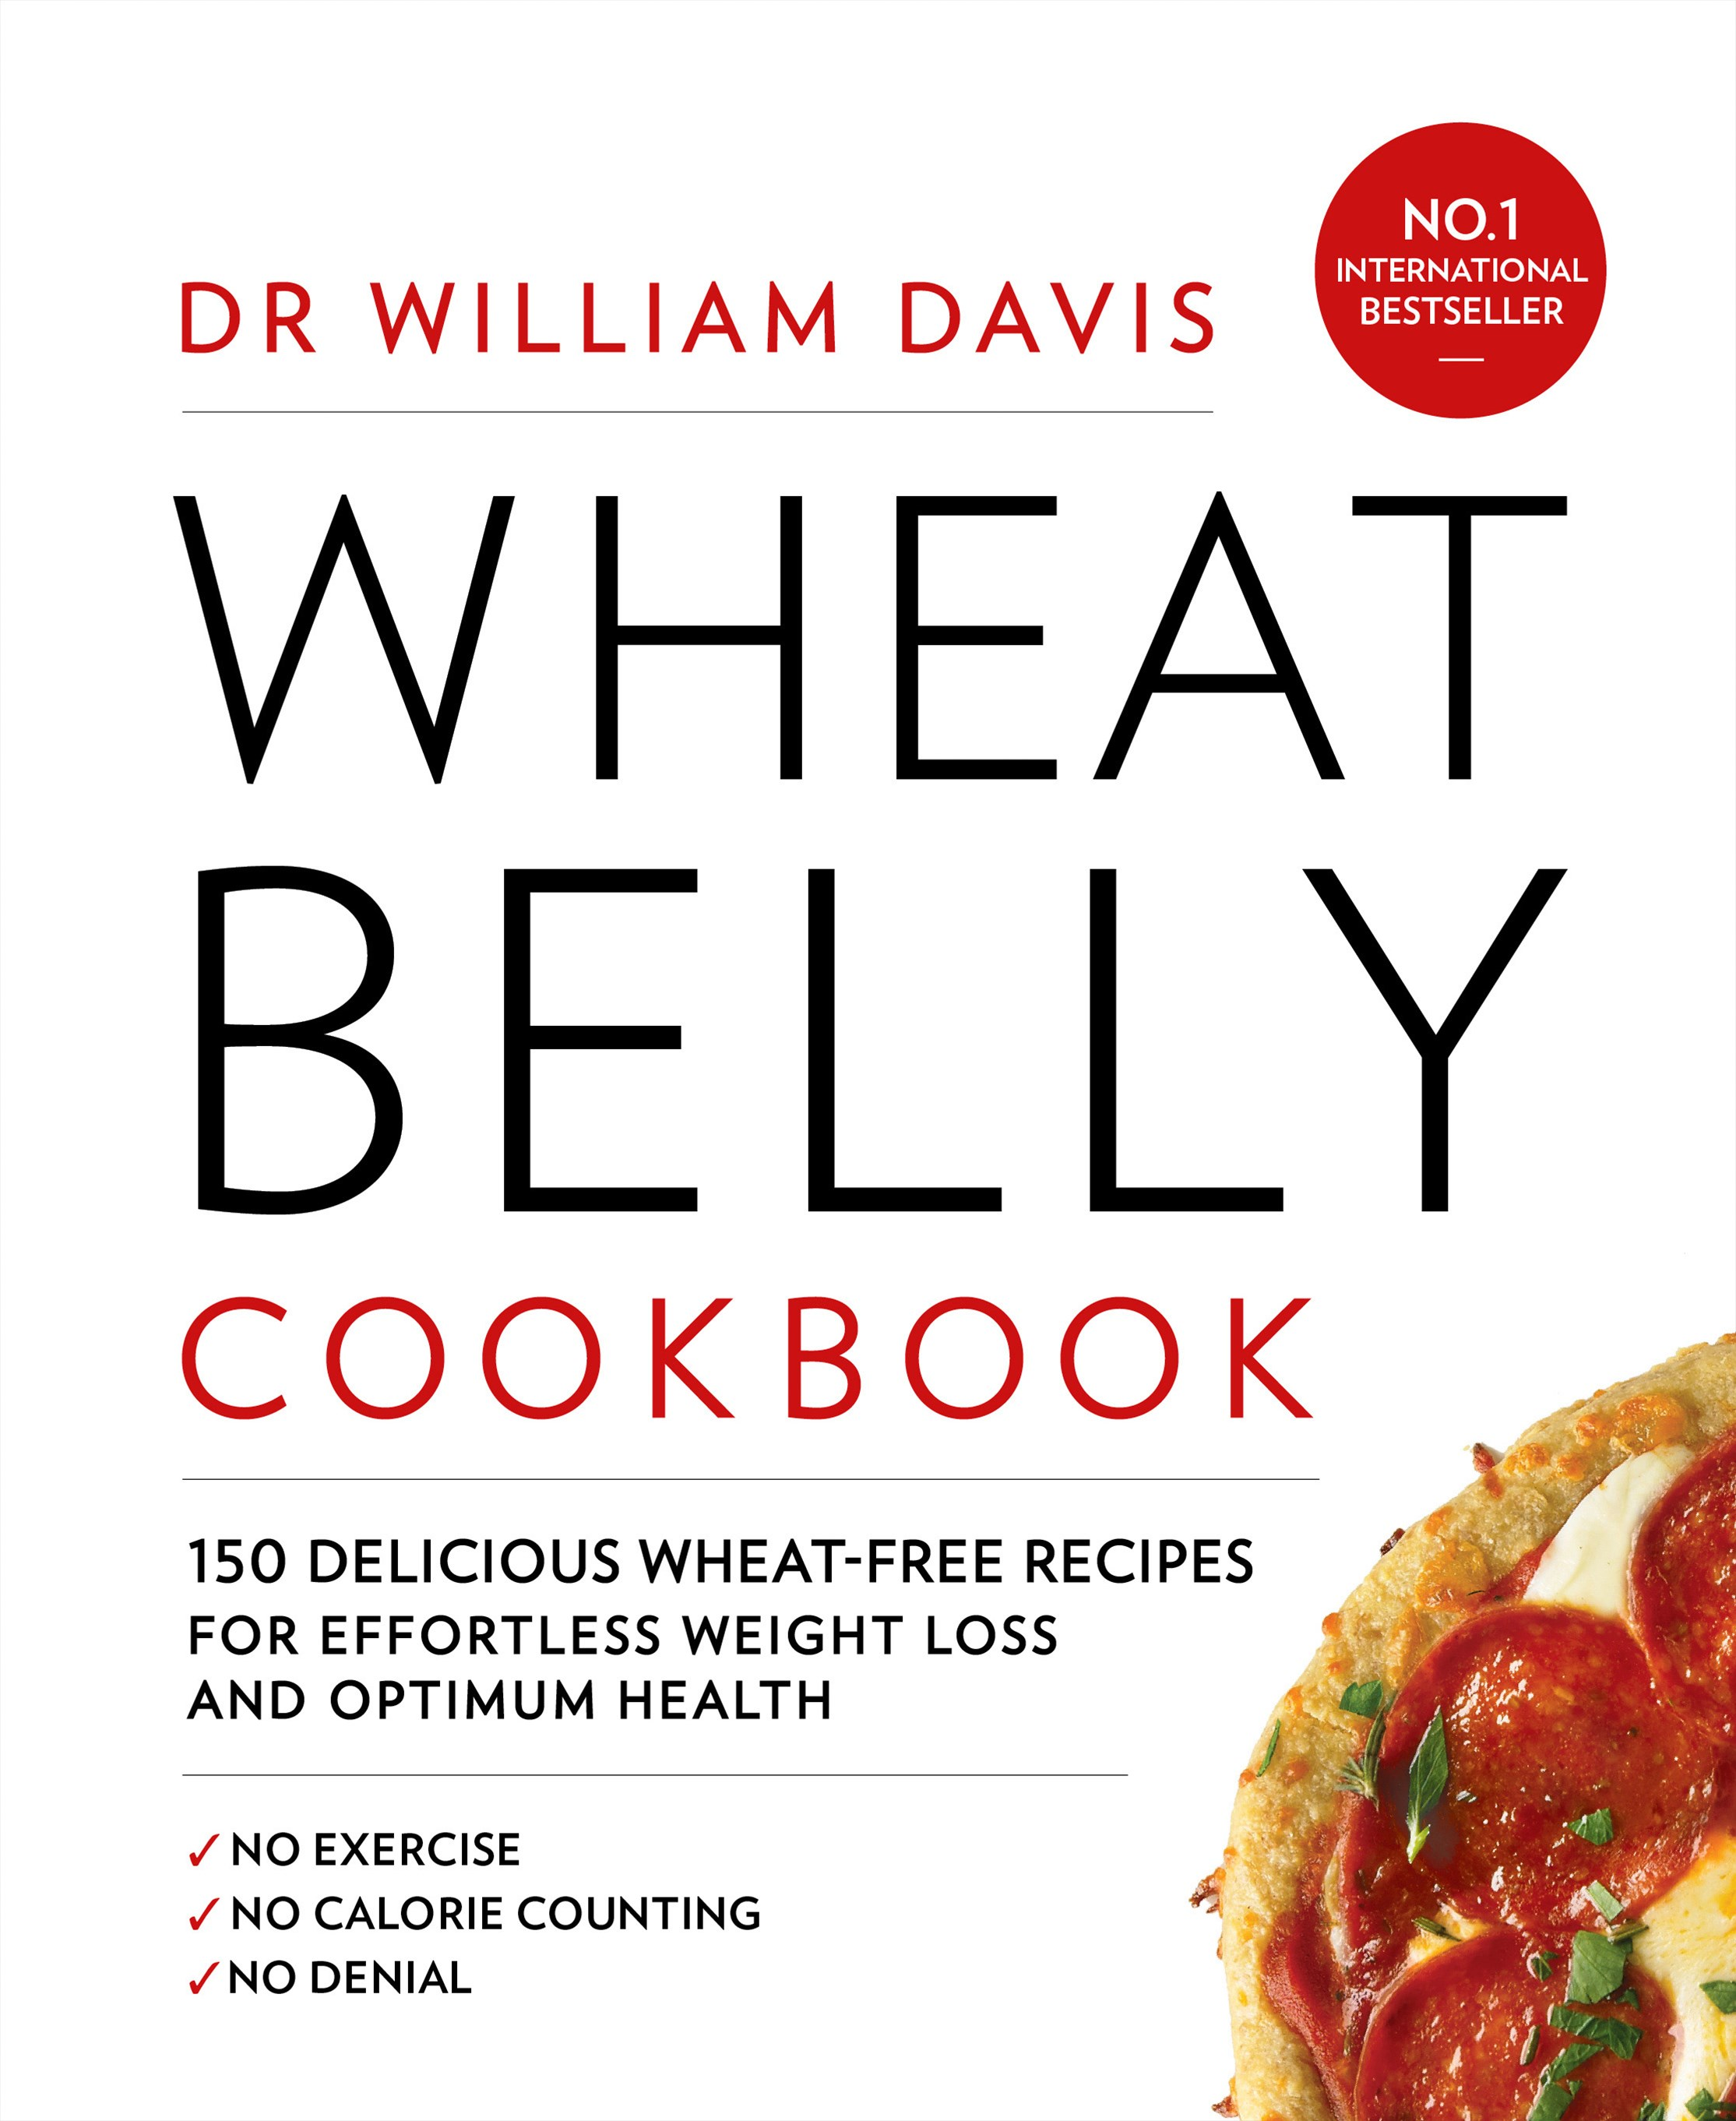 Wheat Belly Cookbook: 150 Delicious Wheat-Free Recipes for Effortless Weight Loss and Optimum Healt